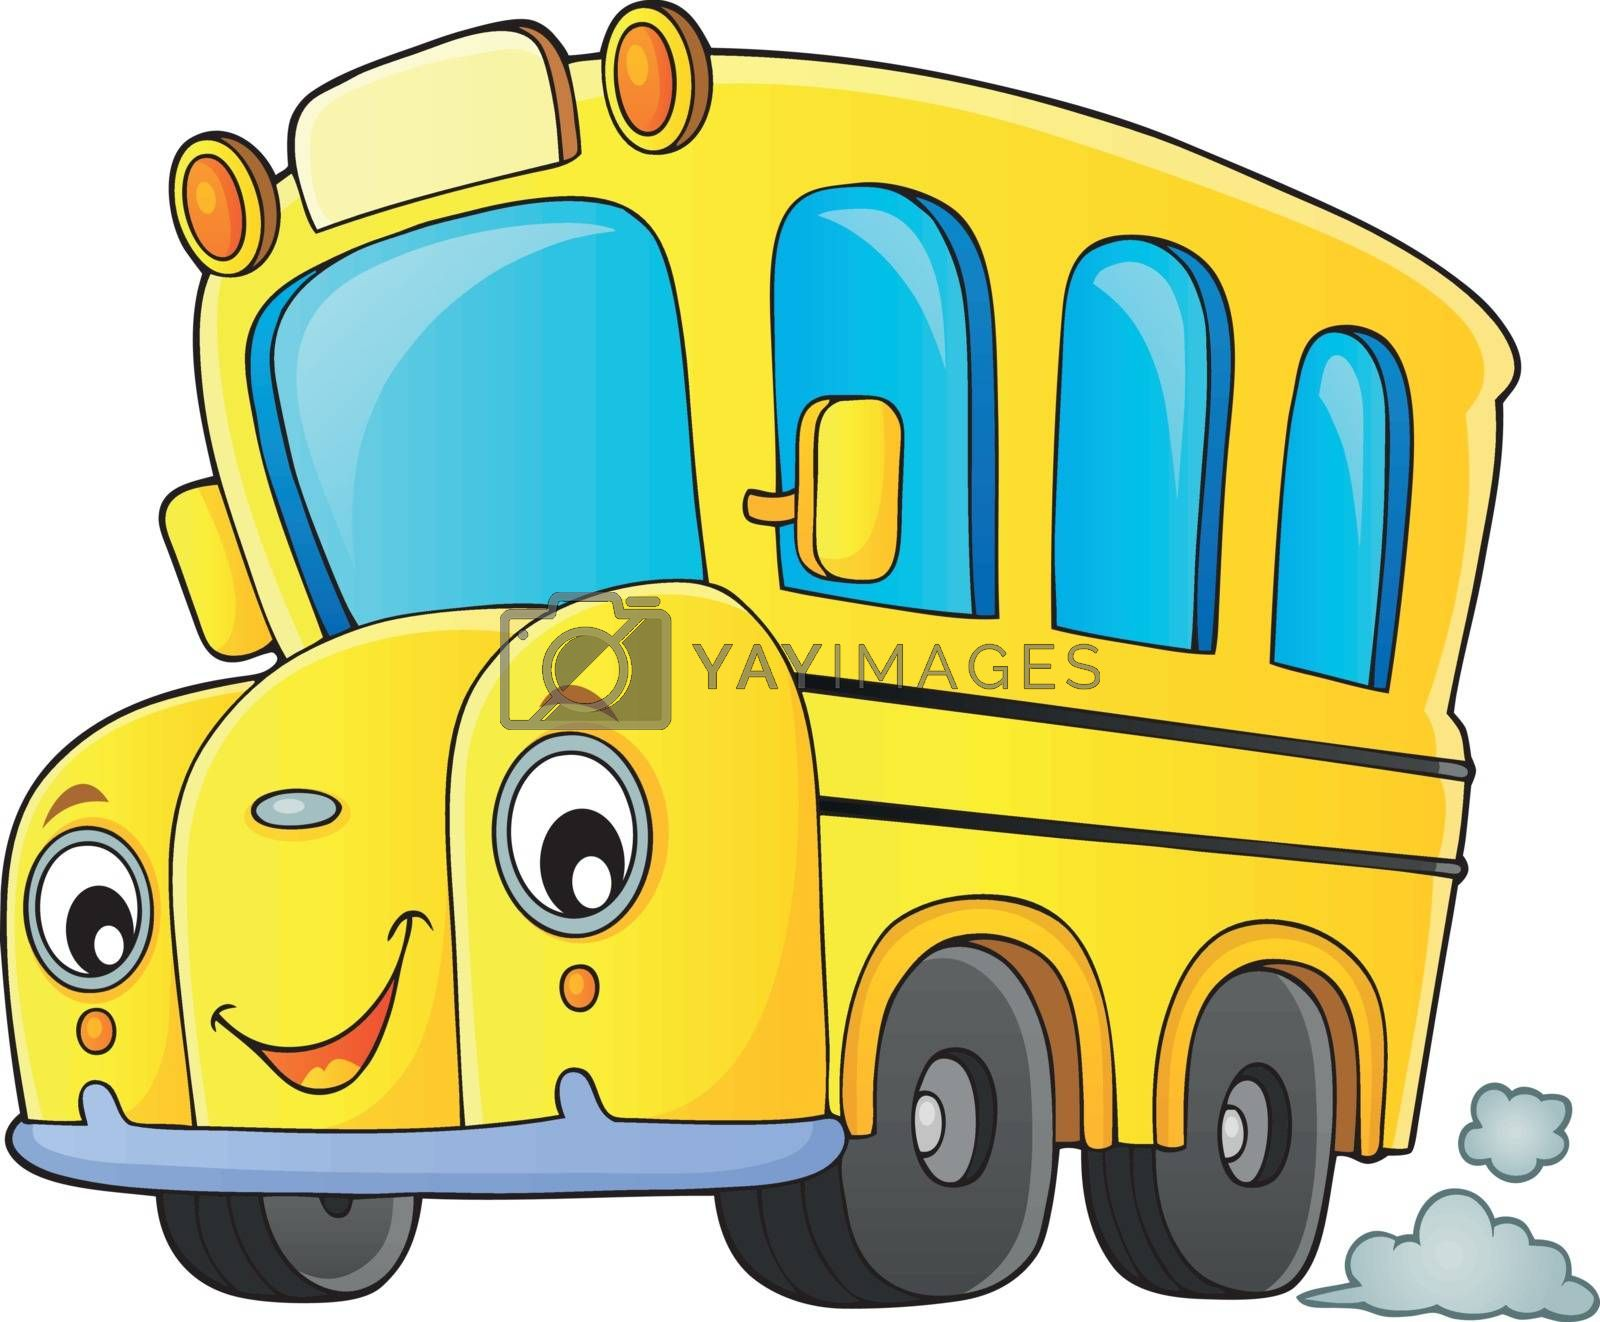 School bus thematics image 1 by clairev